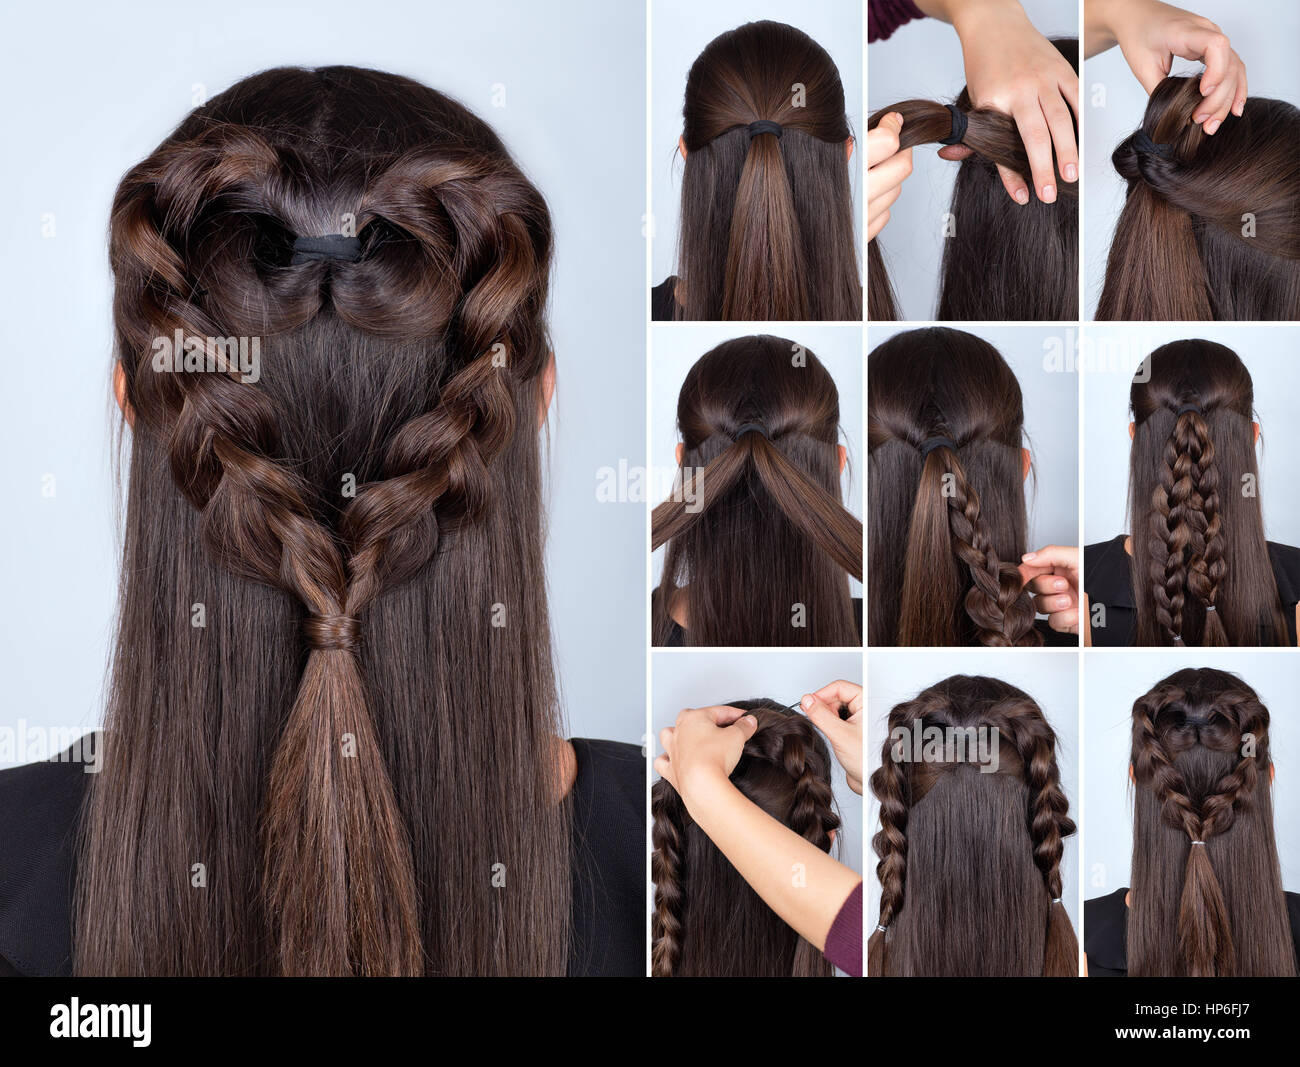 simple braid hairstyle heart tutorial. Hairstyle for long ...